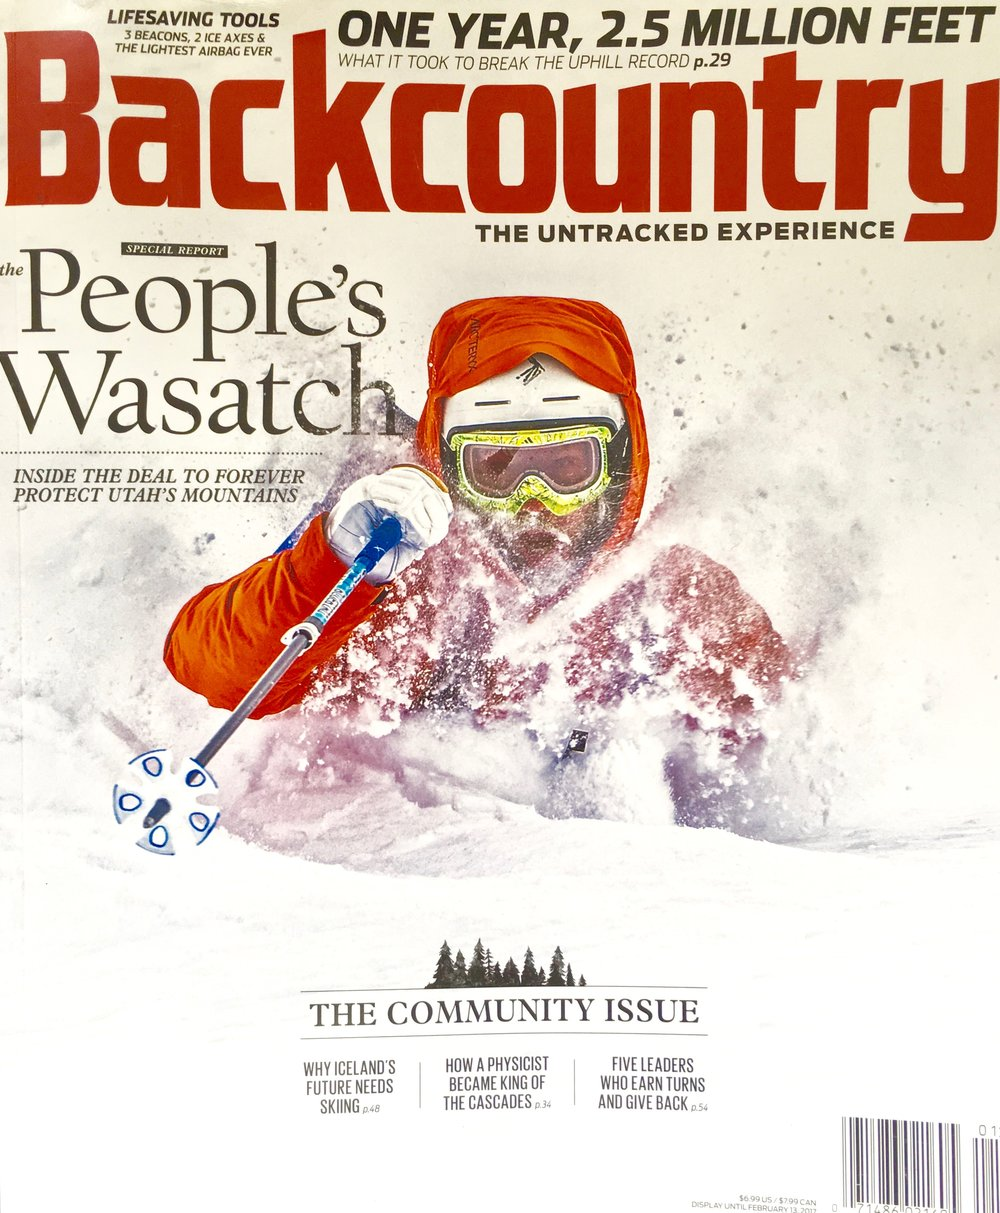 January 2017 A profile of backcountry skier and wolverine researcher Rebecca Watters